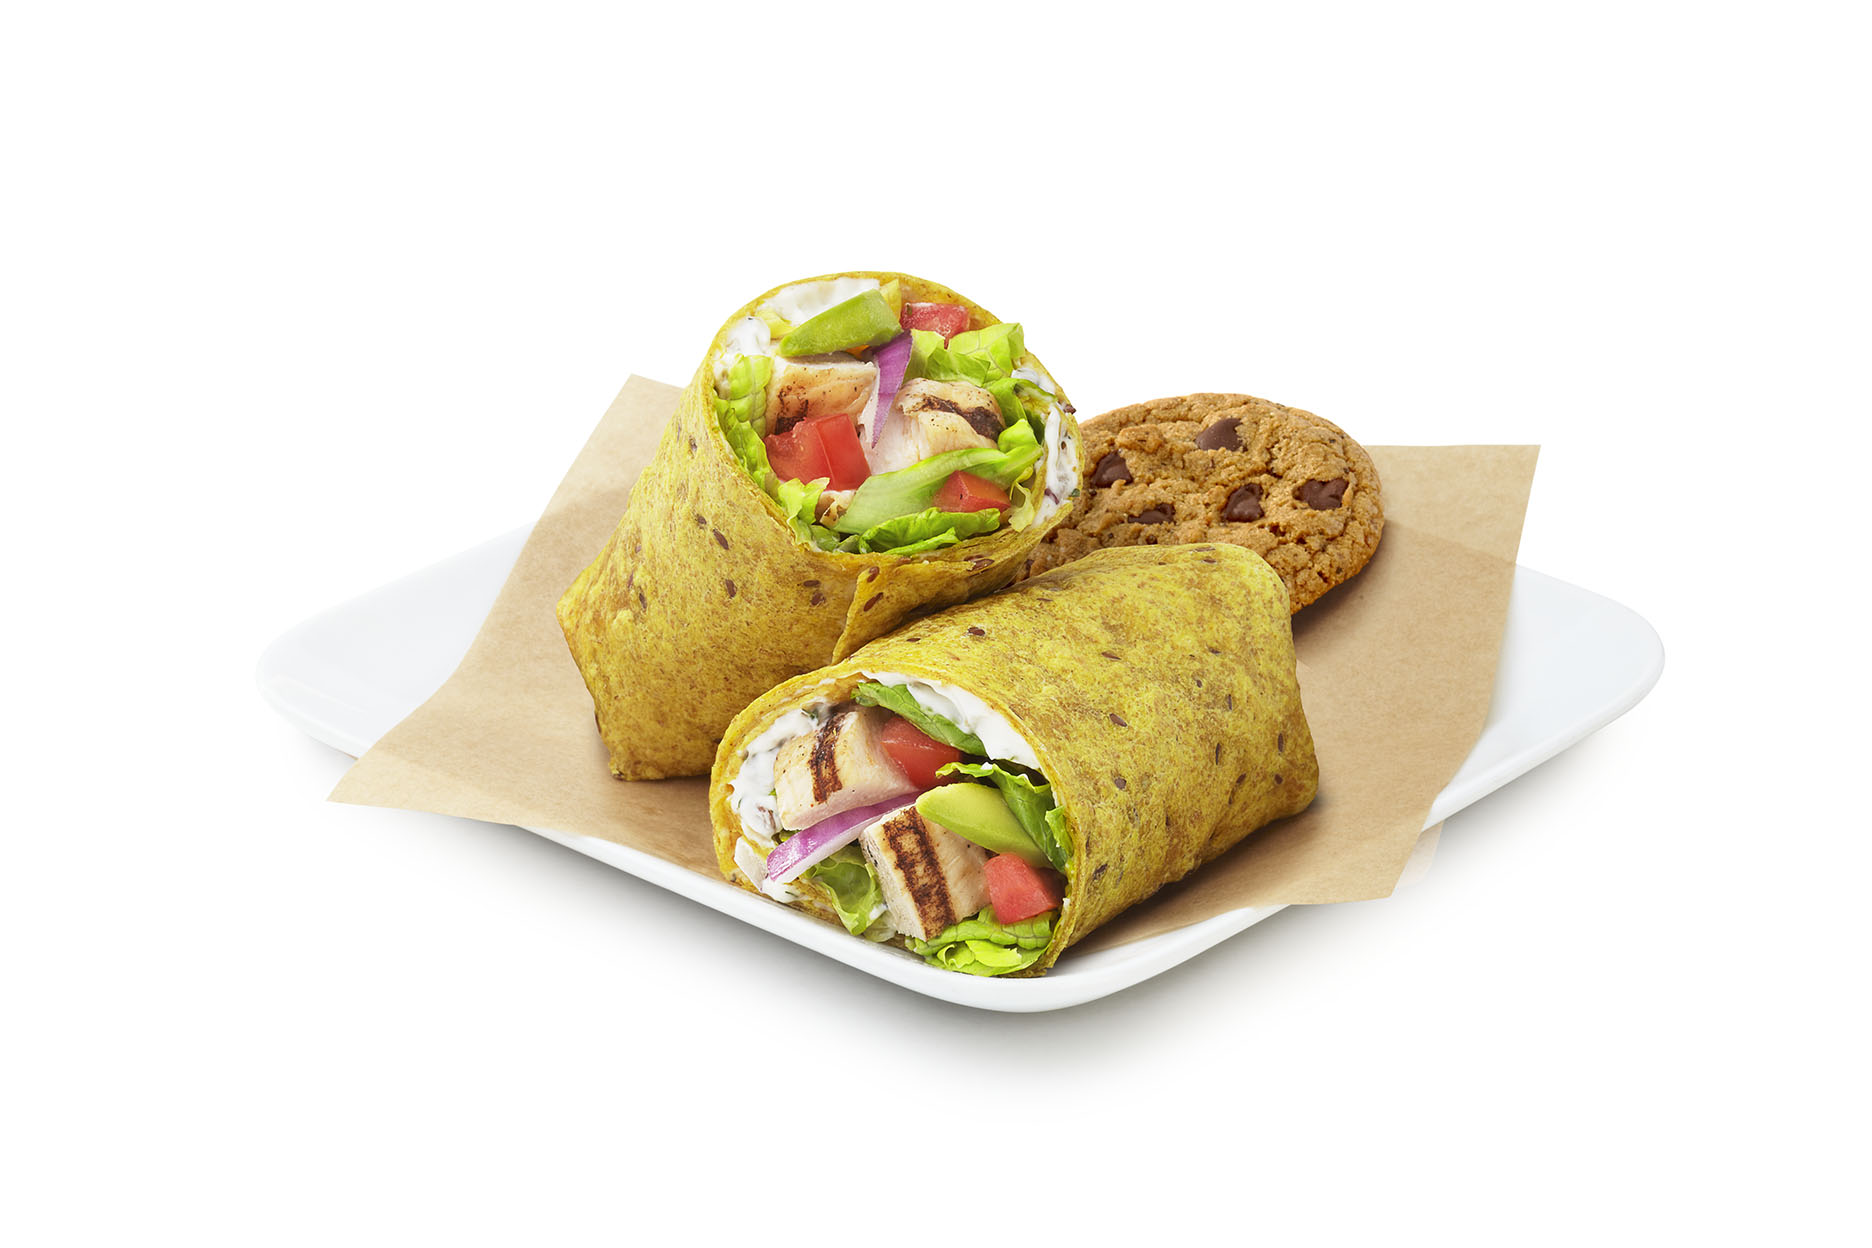 GrilledChickenWrapwithCookieF1FPO1